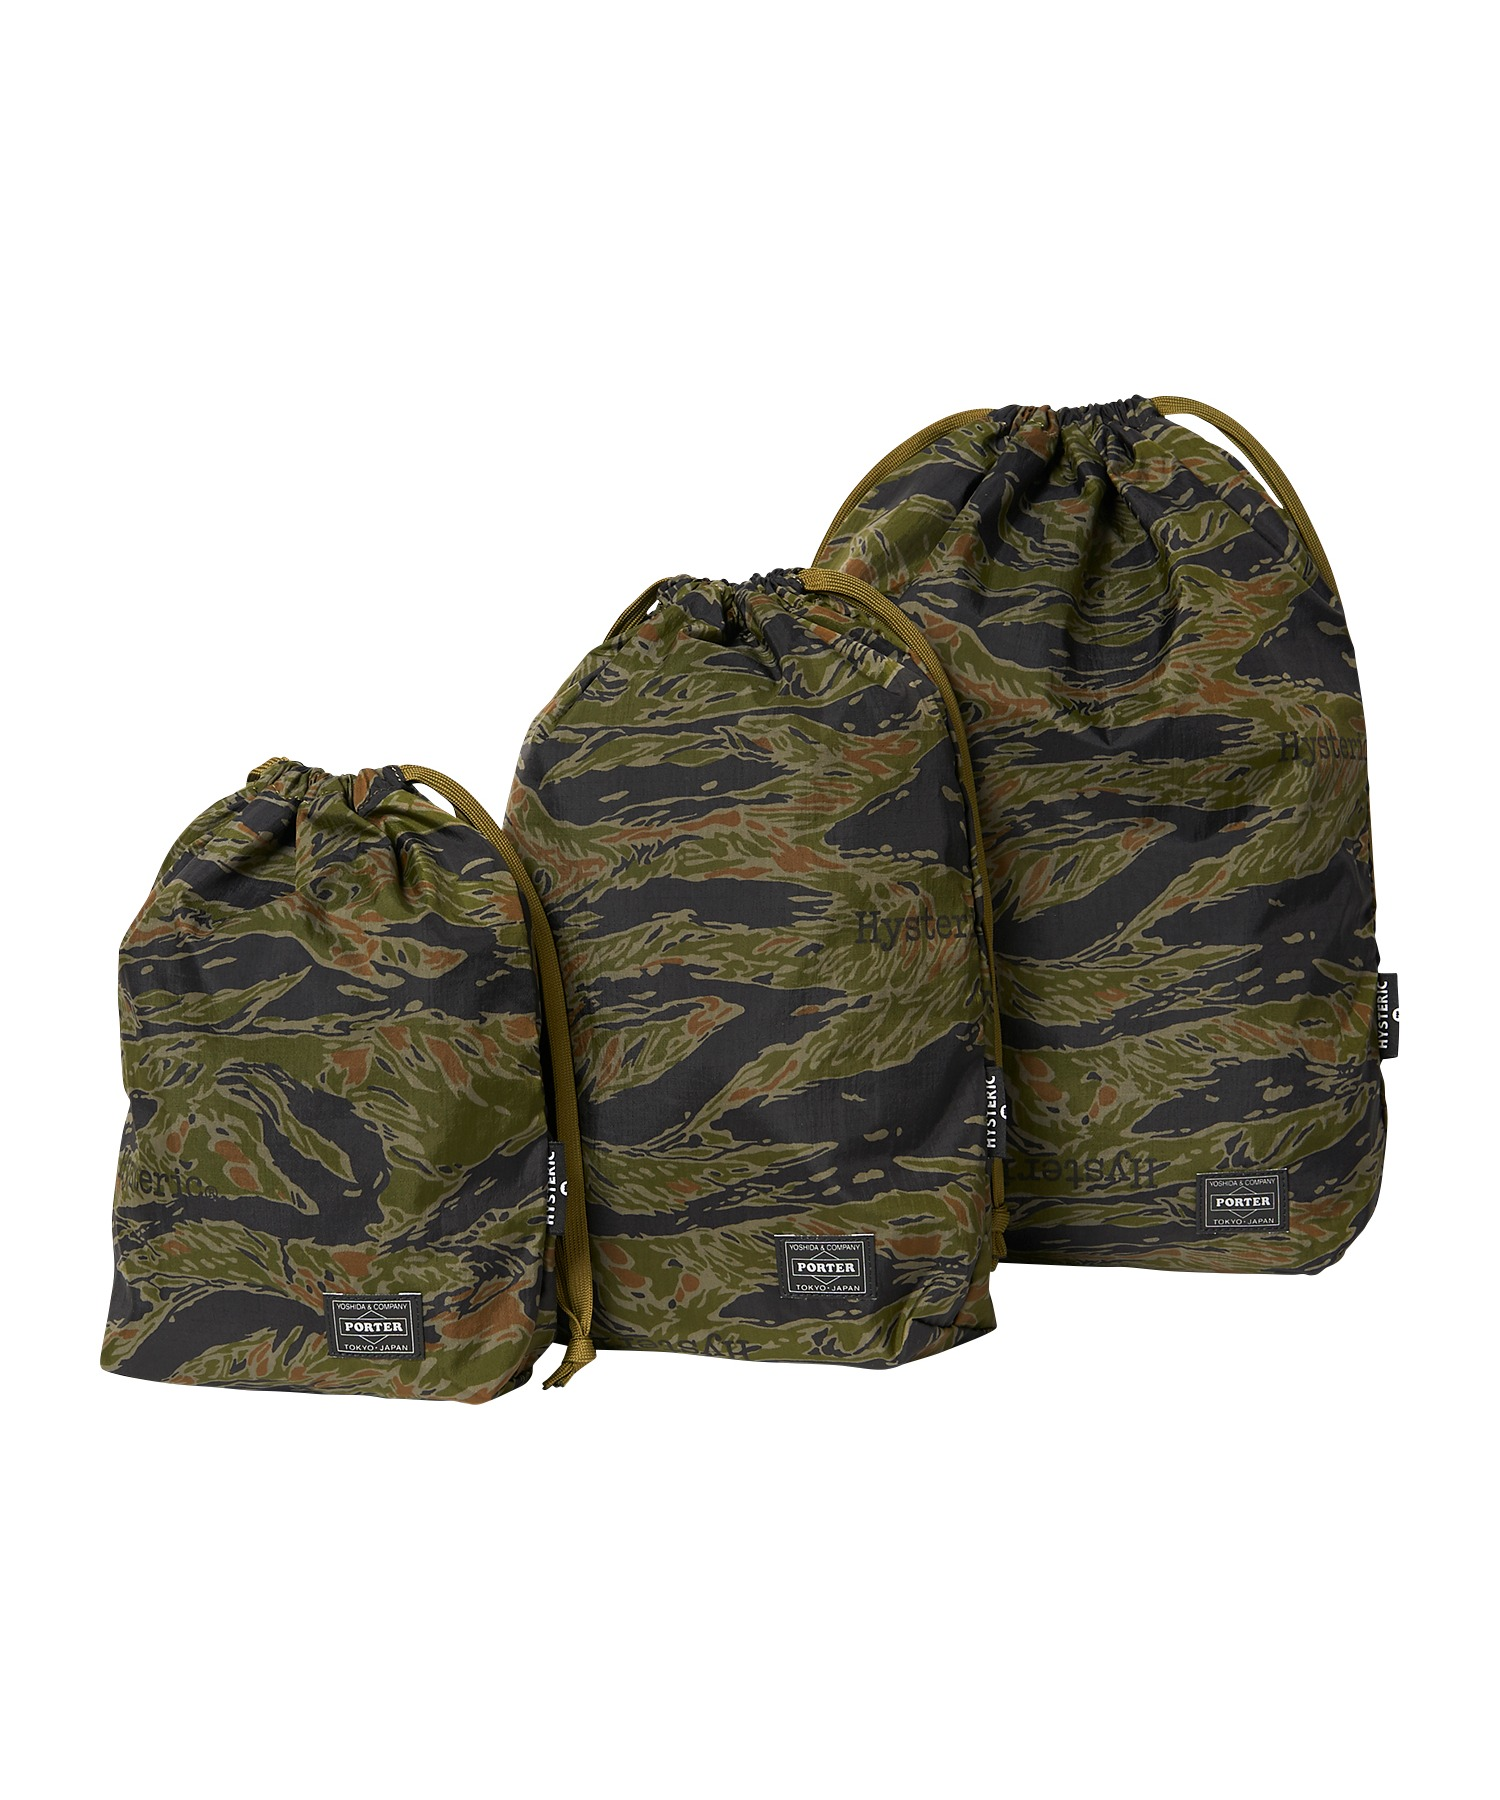 PORTER × HYSTERIC/TIGER CAMO PACKS アーミーポーチ